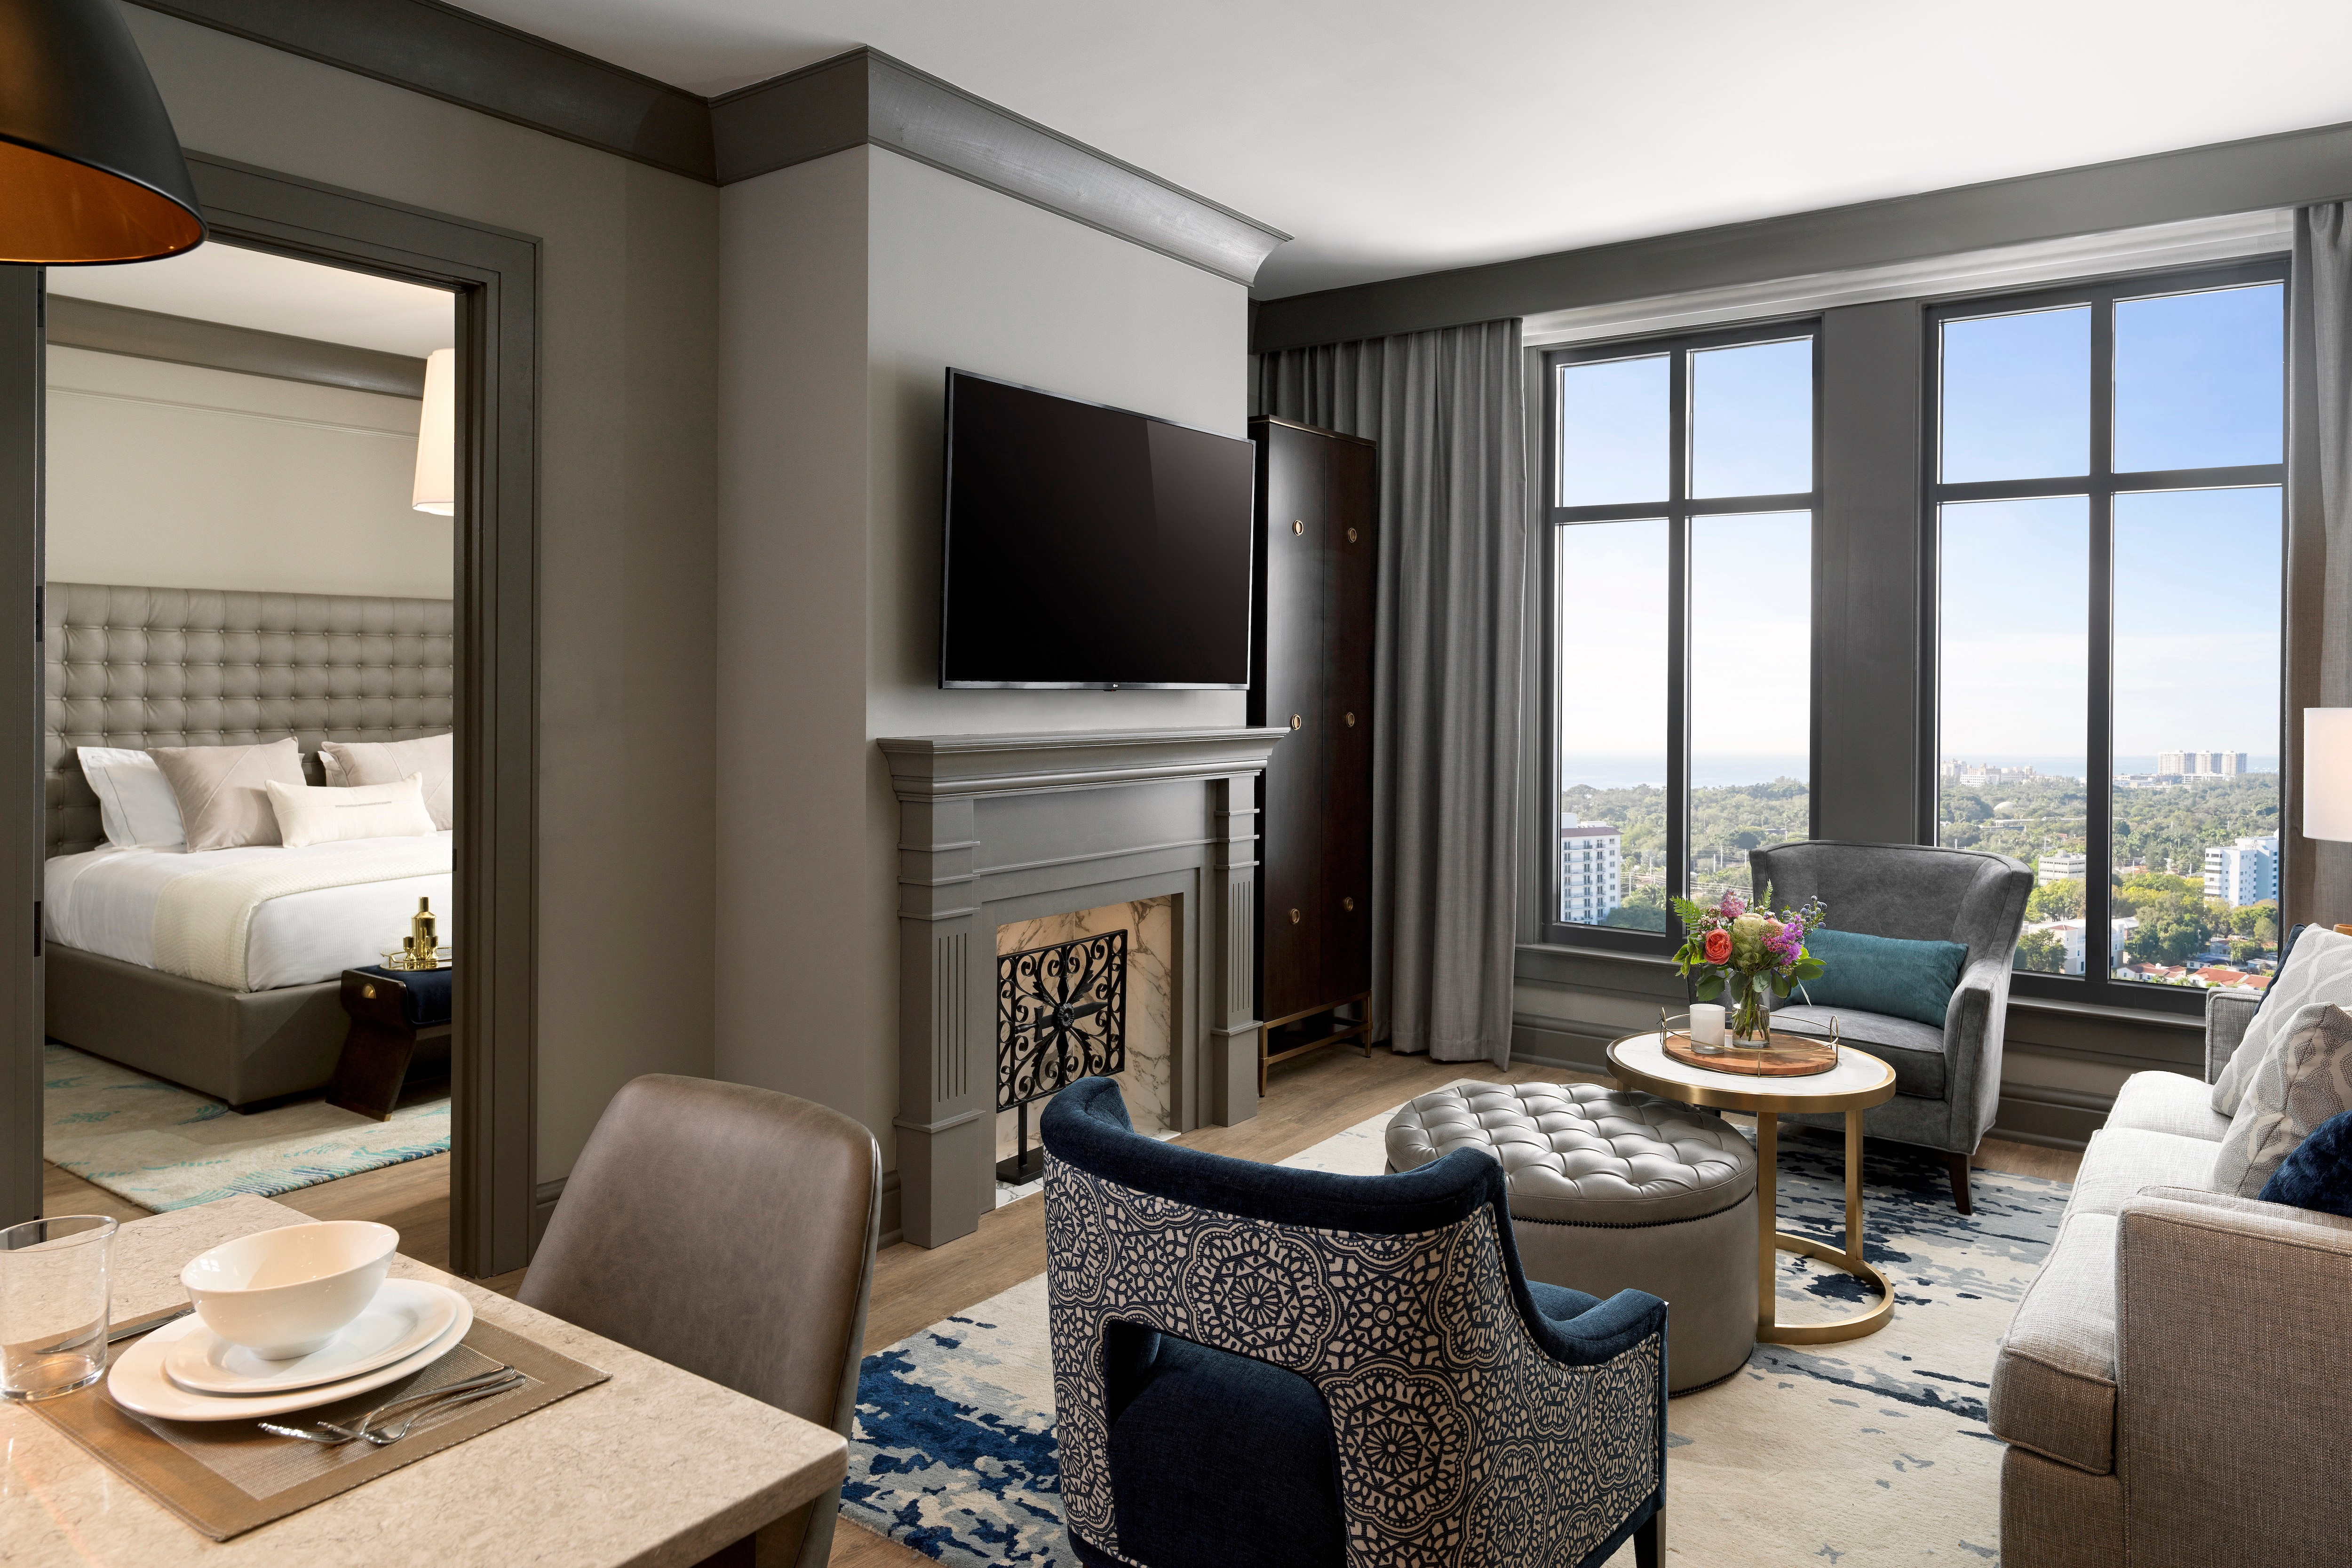 1-bedroom suite interior view, including living room and kitchen at Liberty Place Charleston by Hilton Club in South Carolina.